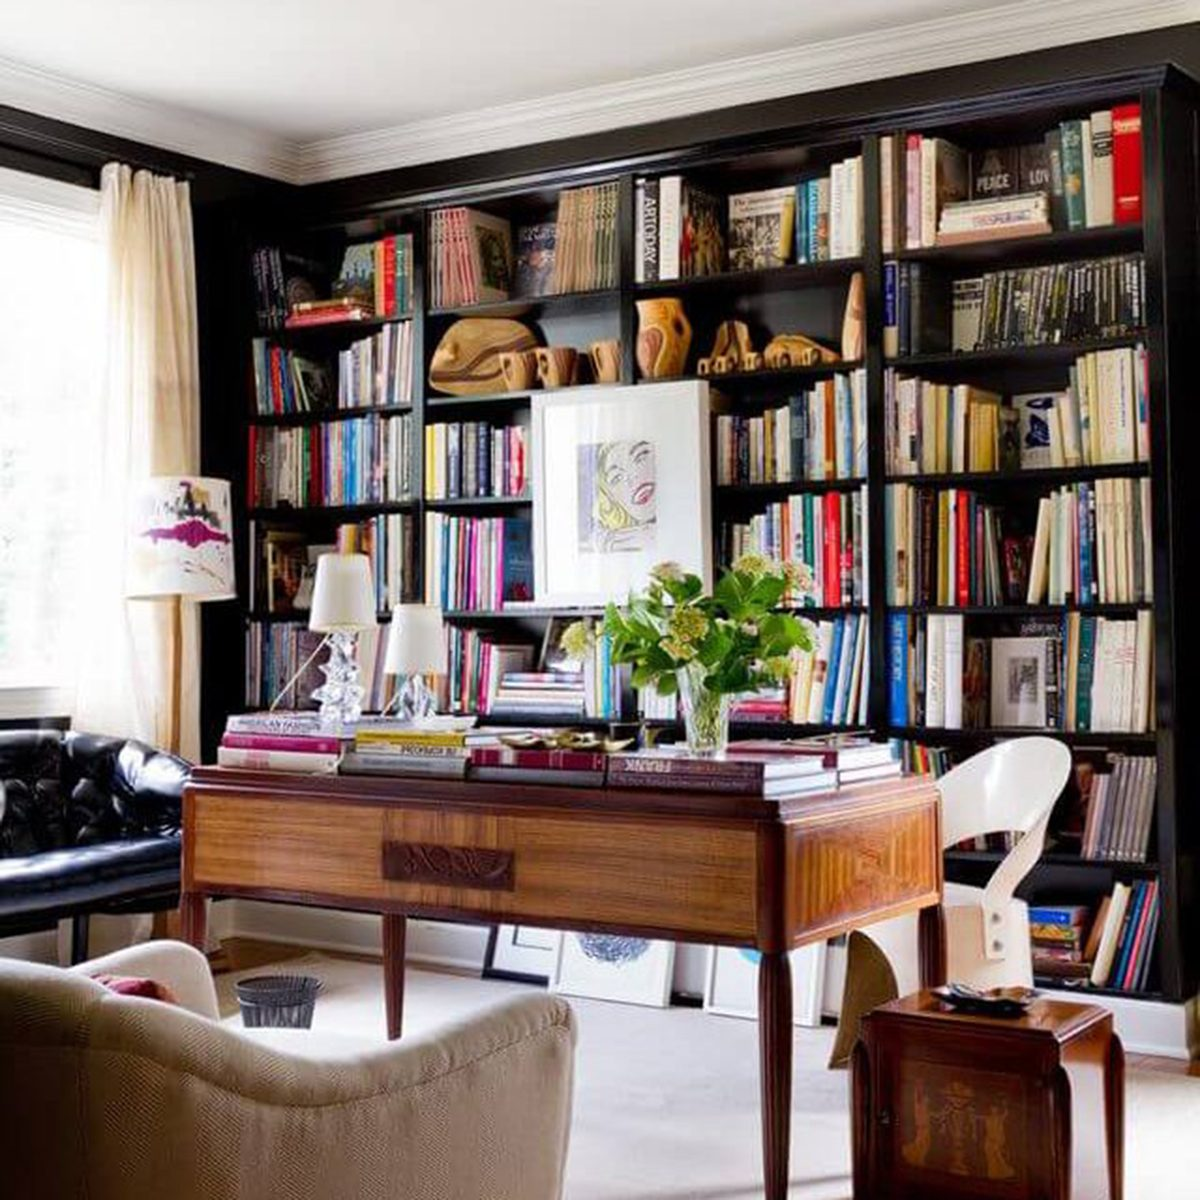 Home library filled with pop art prints, hand-carved wooden artifacts, and a slew of inspiring reads.